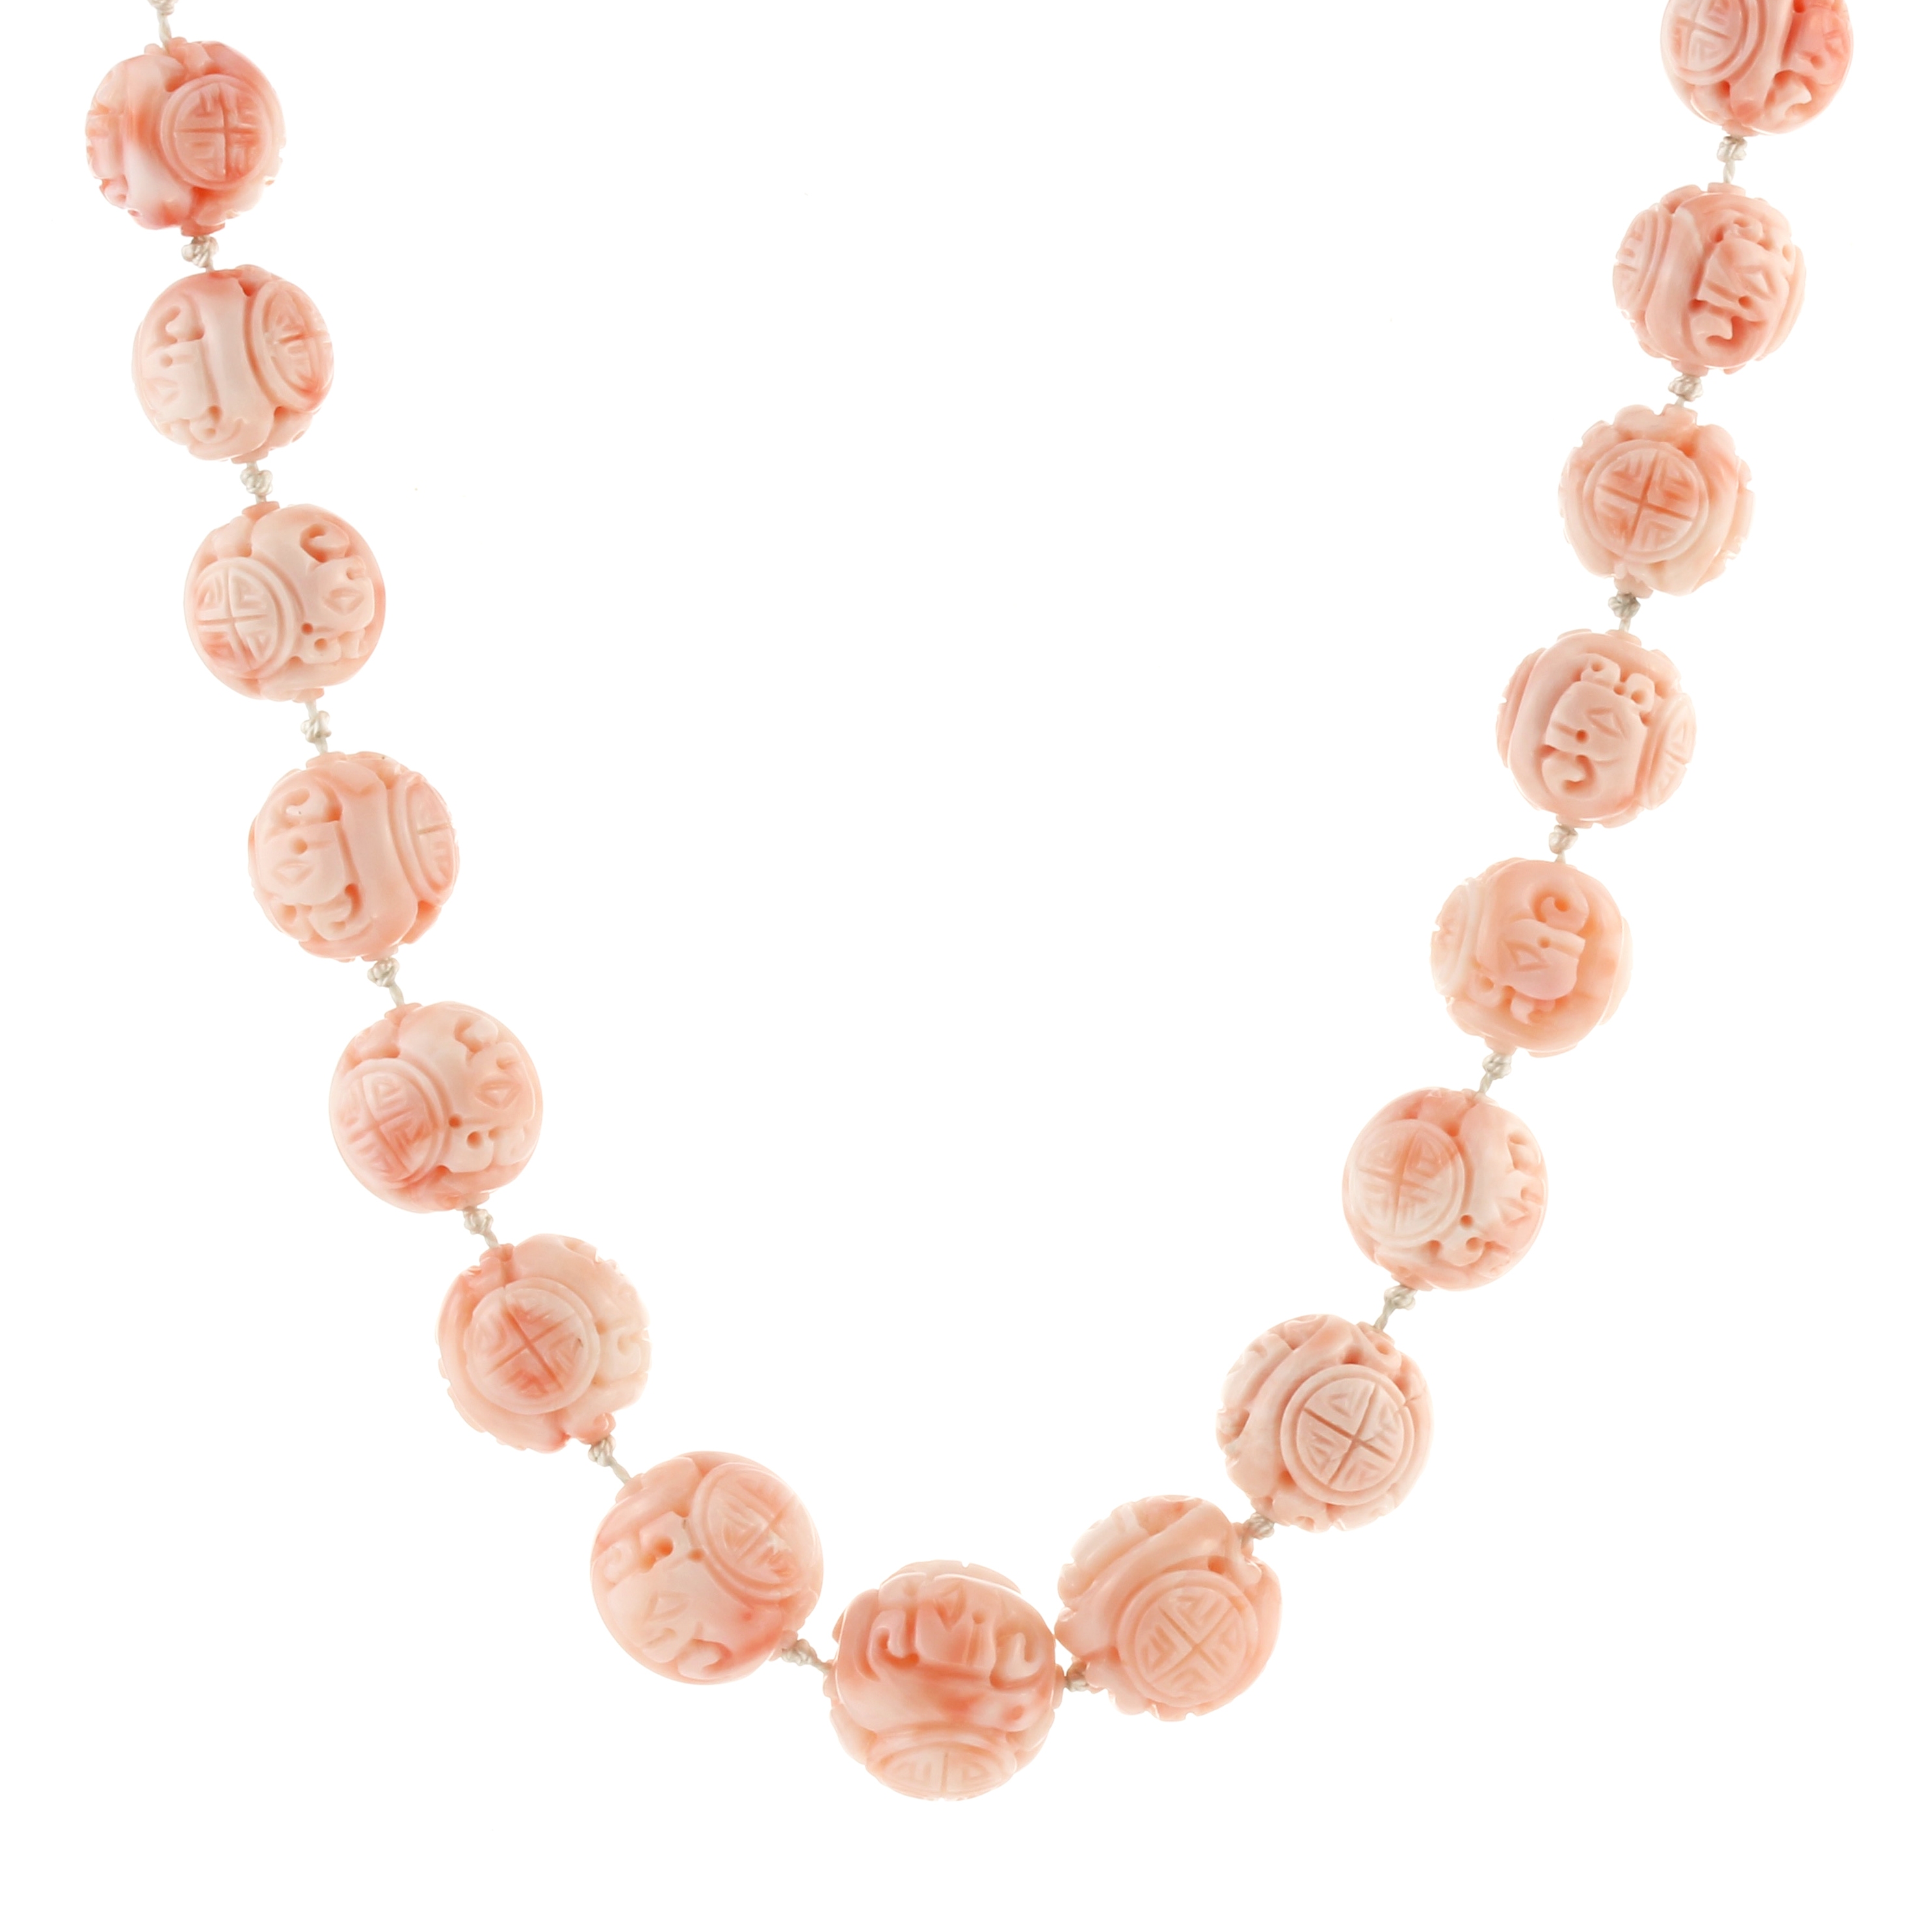 A CHINESE CORAL BEAD NECKLACE comprising a single row of thirty two graduated carved coral beads